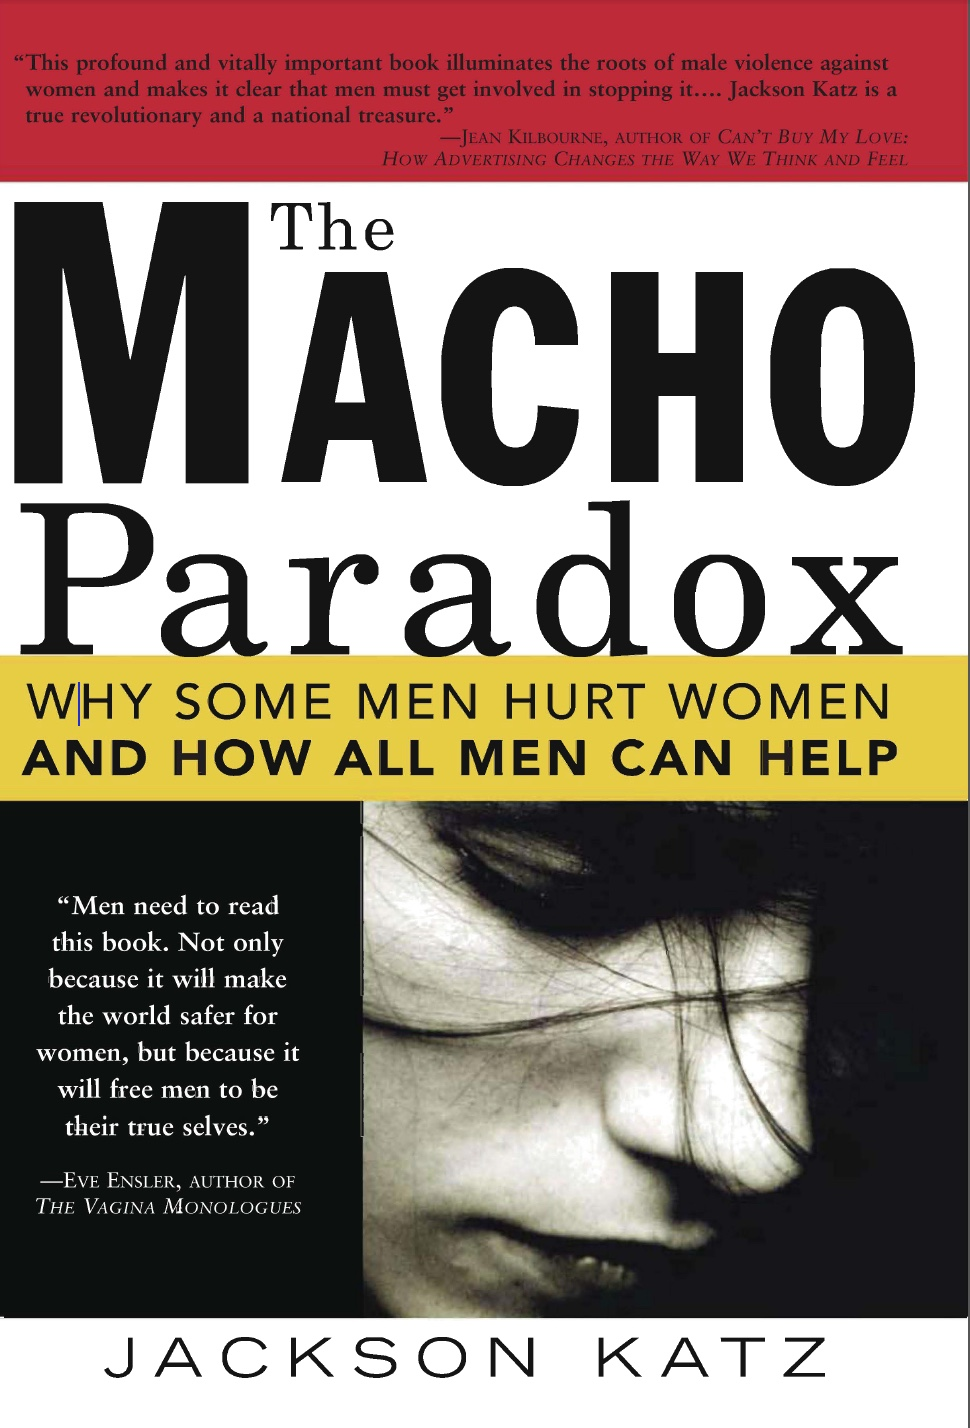 Funk, The Macho Paradox cover